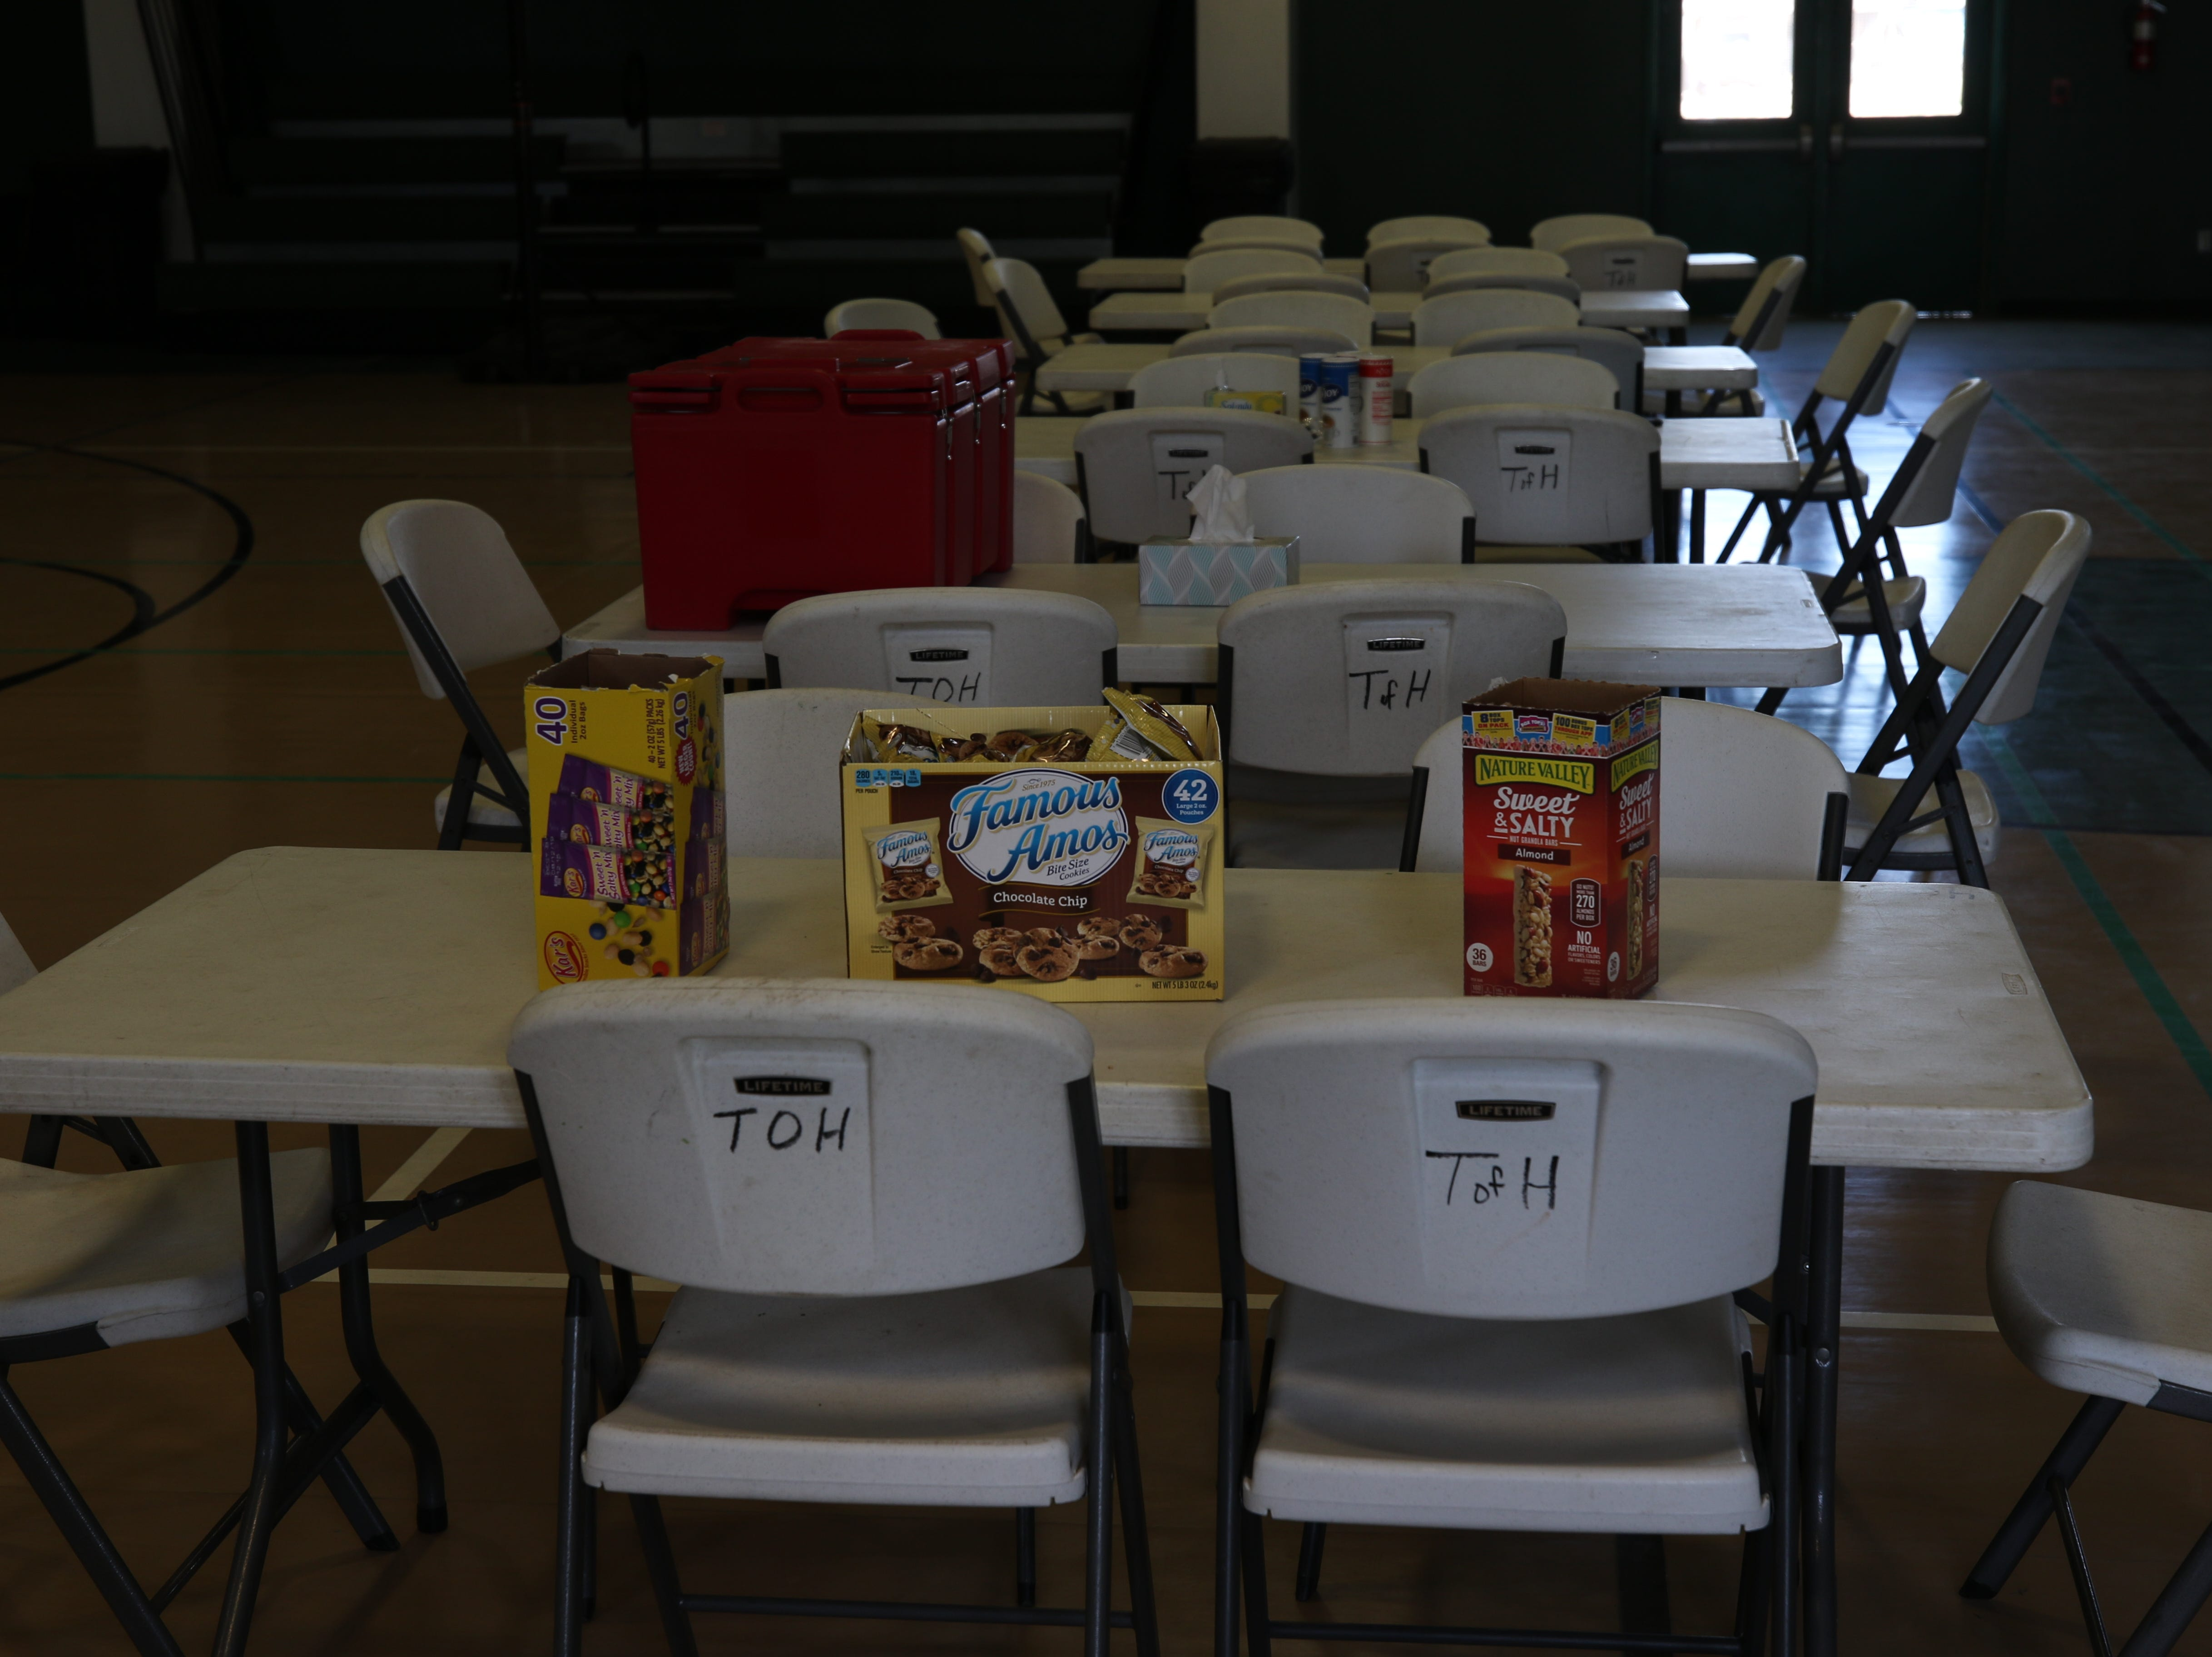 Food waits for evacuees at a Red Cross shelter in Hagerman, New Mexico Wednesday.